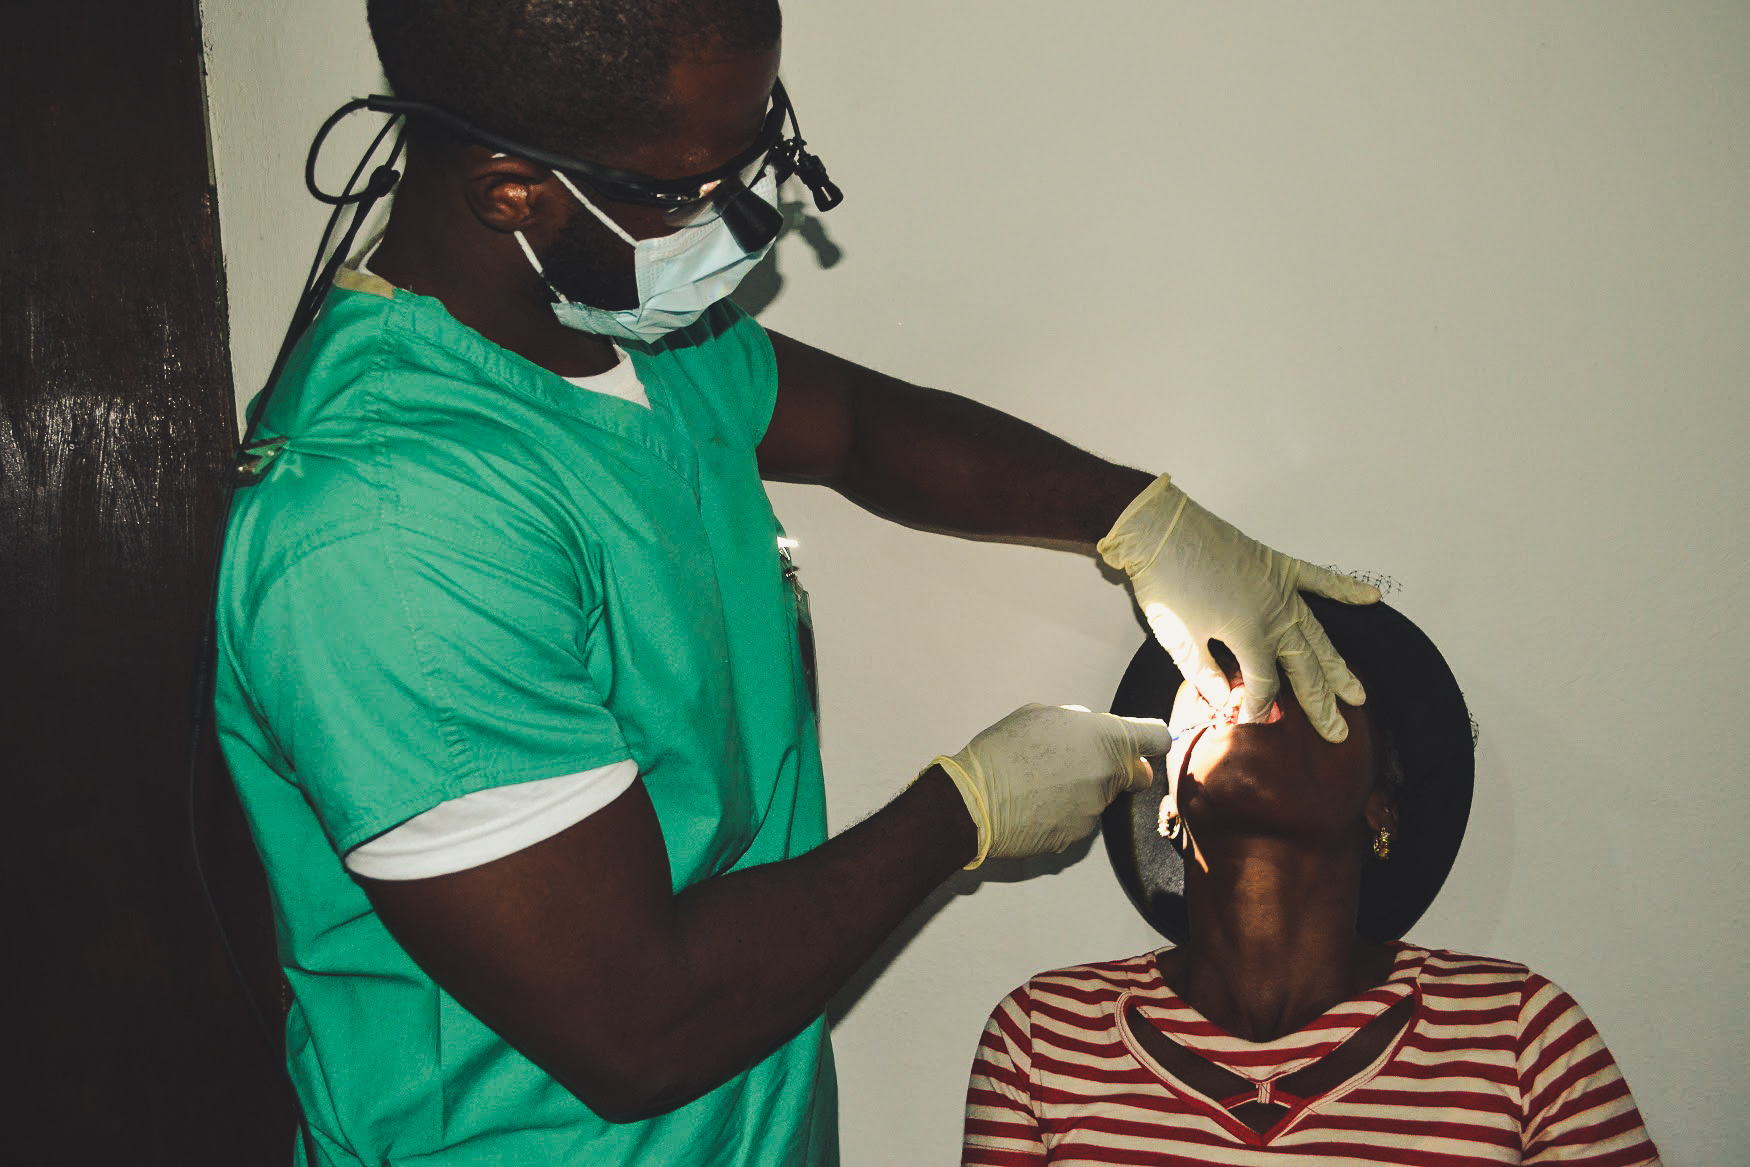 Dental Initiative - The region of St. Michel was in dire need of a dentist. We spoke to the community and realized the majority of the community had never seen a dentist! We brought in Haitian dentists from the U.S., as well as Haitian dentists living in Haiti to work beside each other to provide the region with their first dental experience. Now a fundraised dental chair and equipment is available for use in the community for the long-term. Join our efforts in establishing dental sustainability!